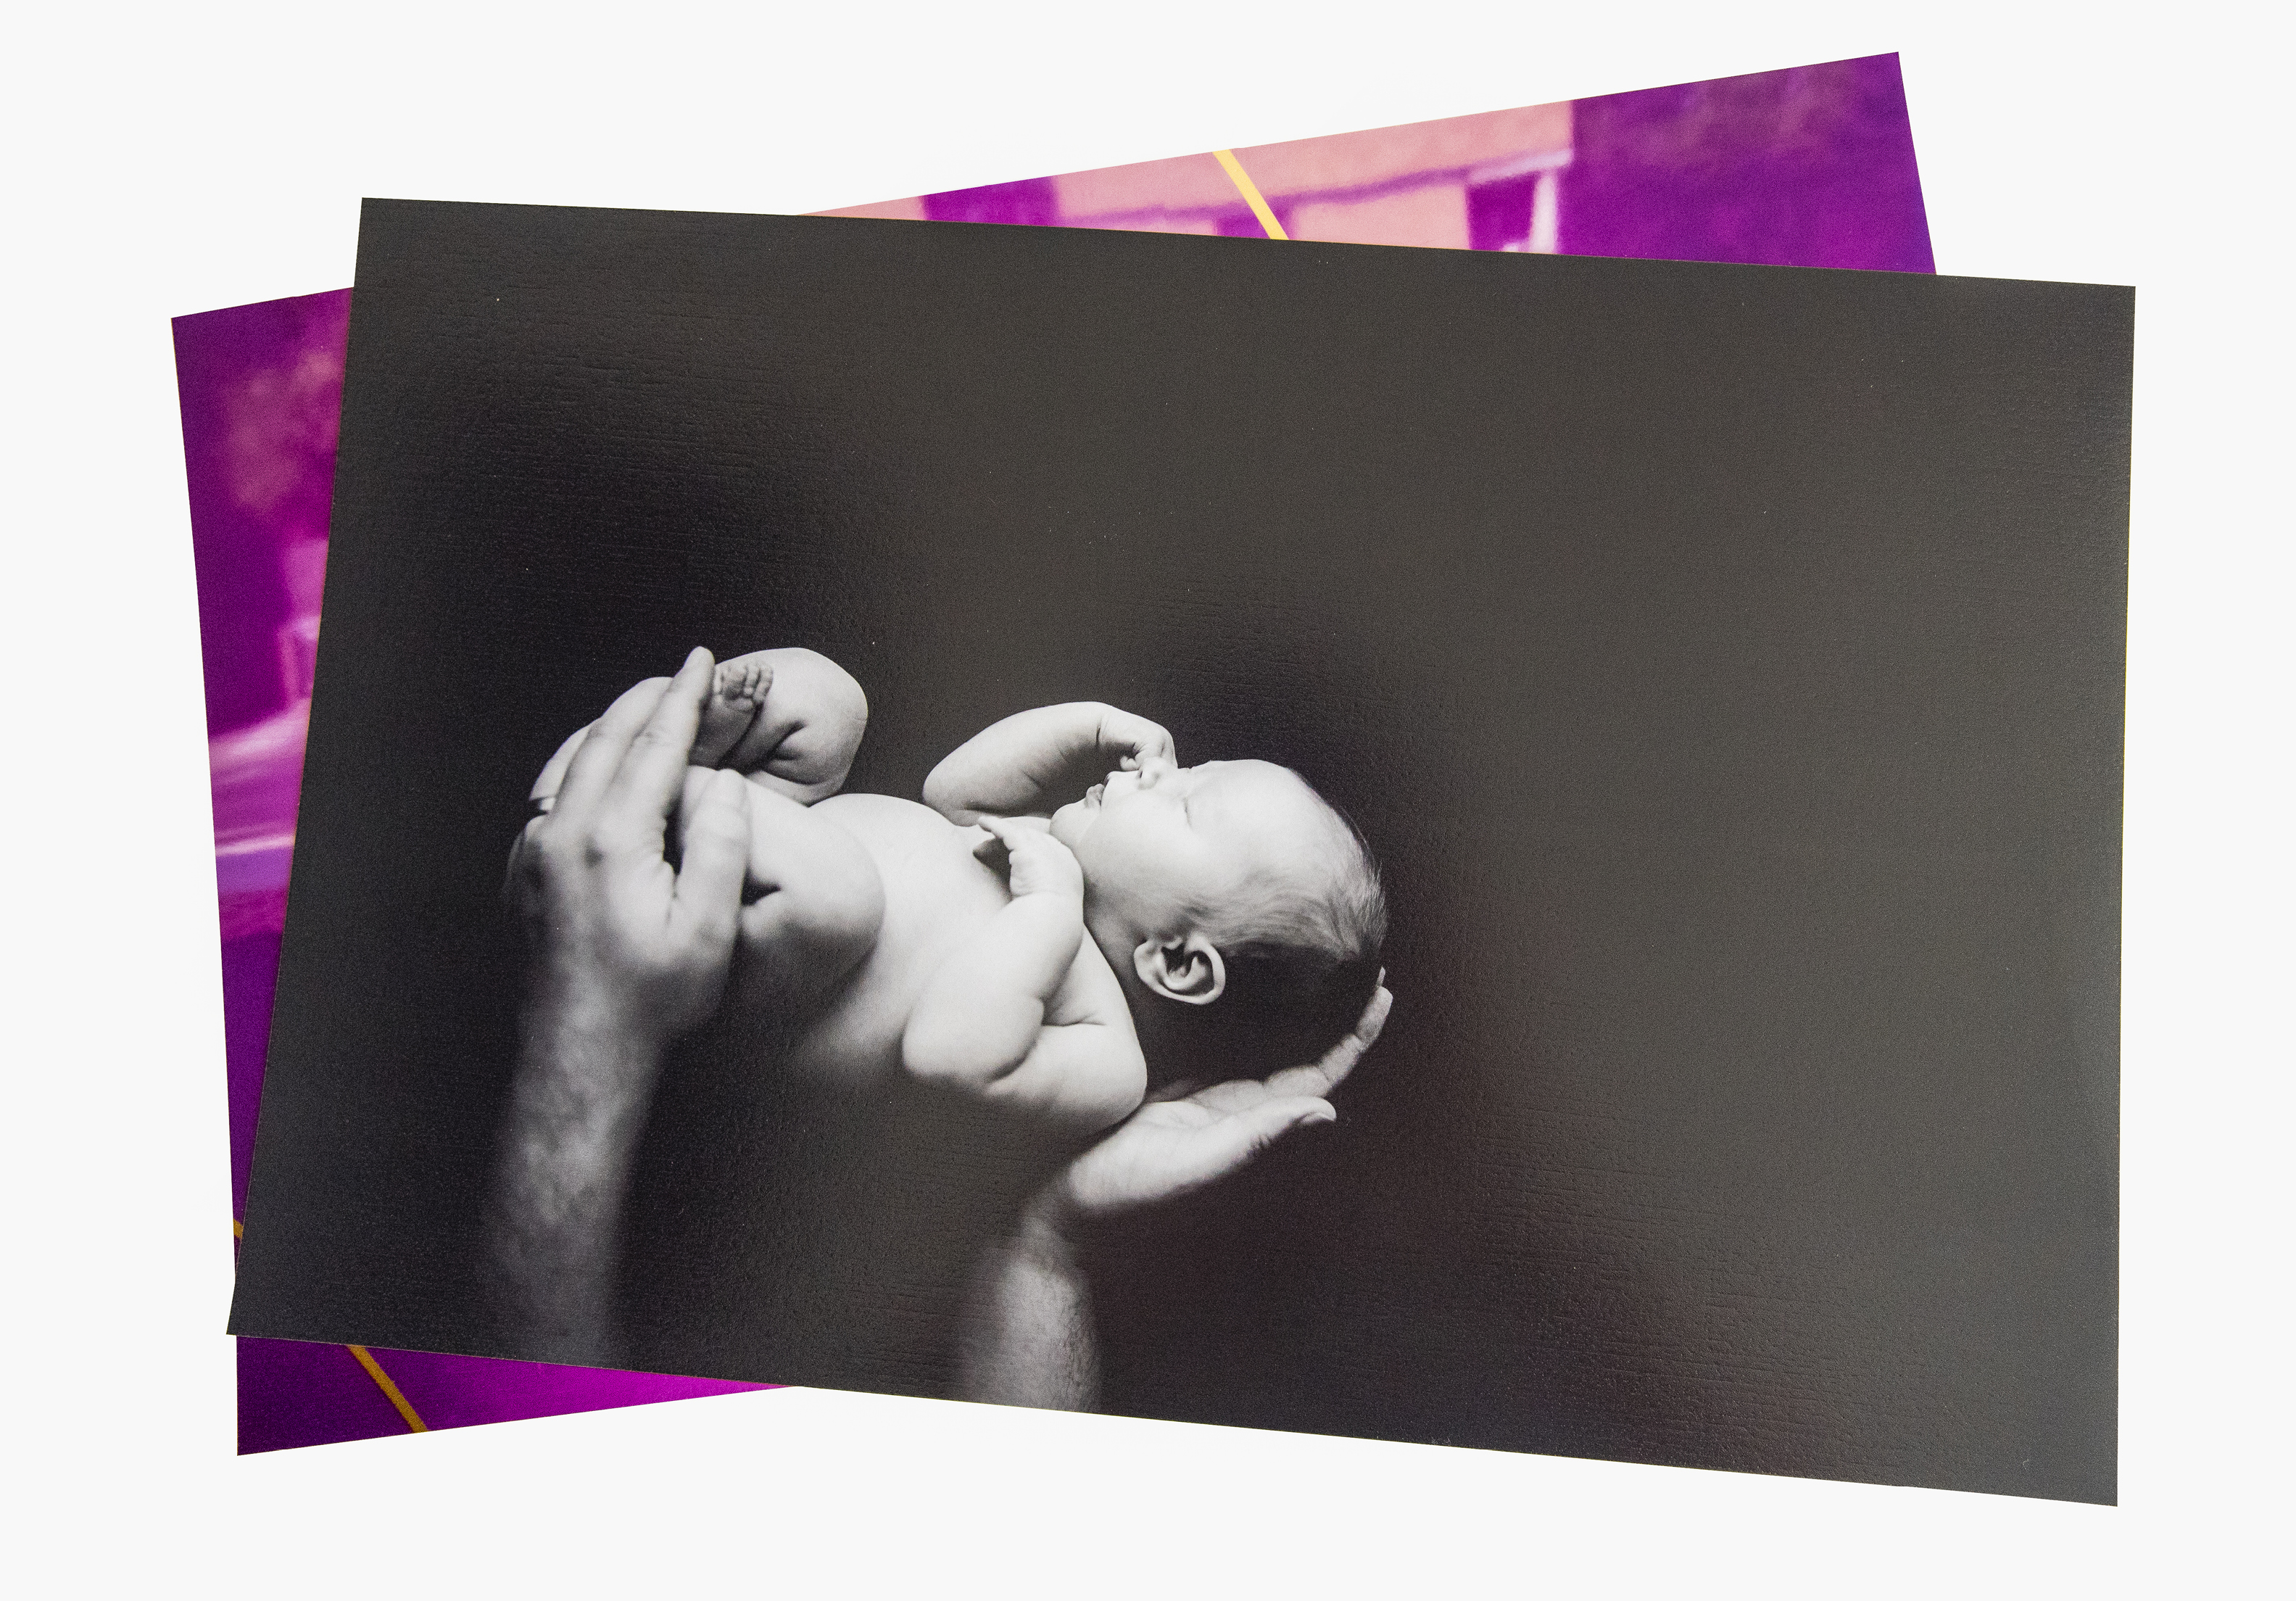 Metallic Photo Prints Professional Metallic Photo Printing